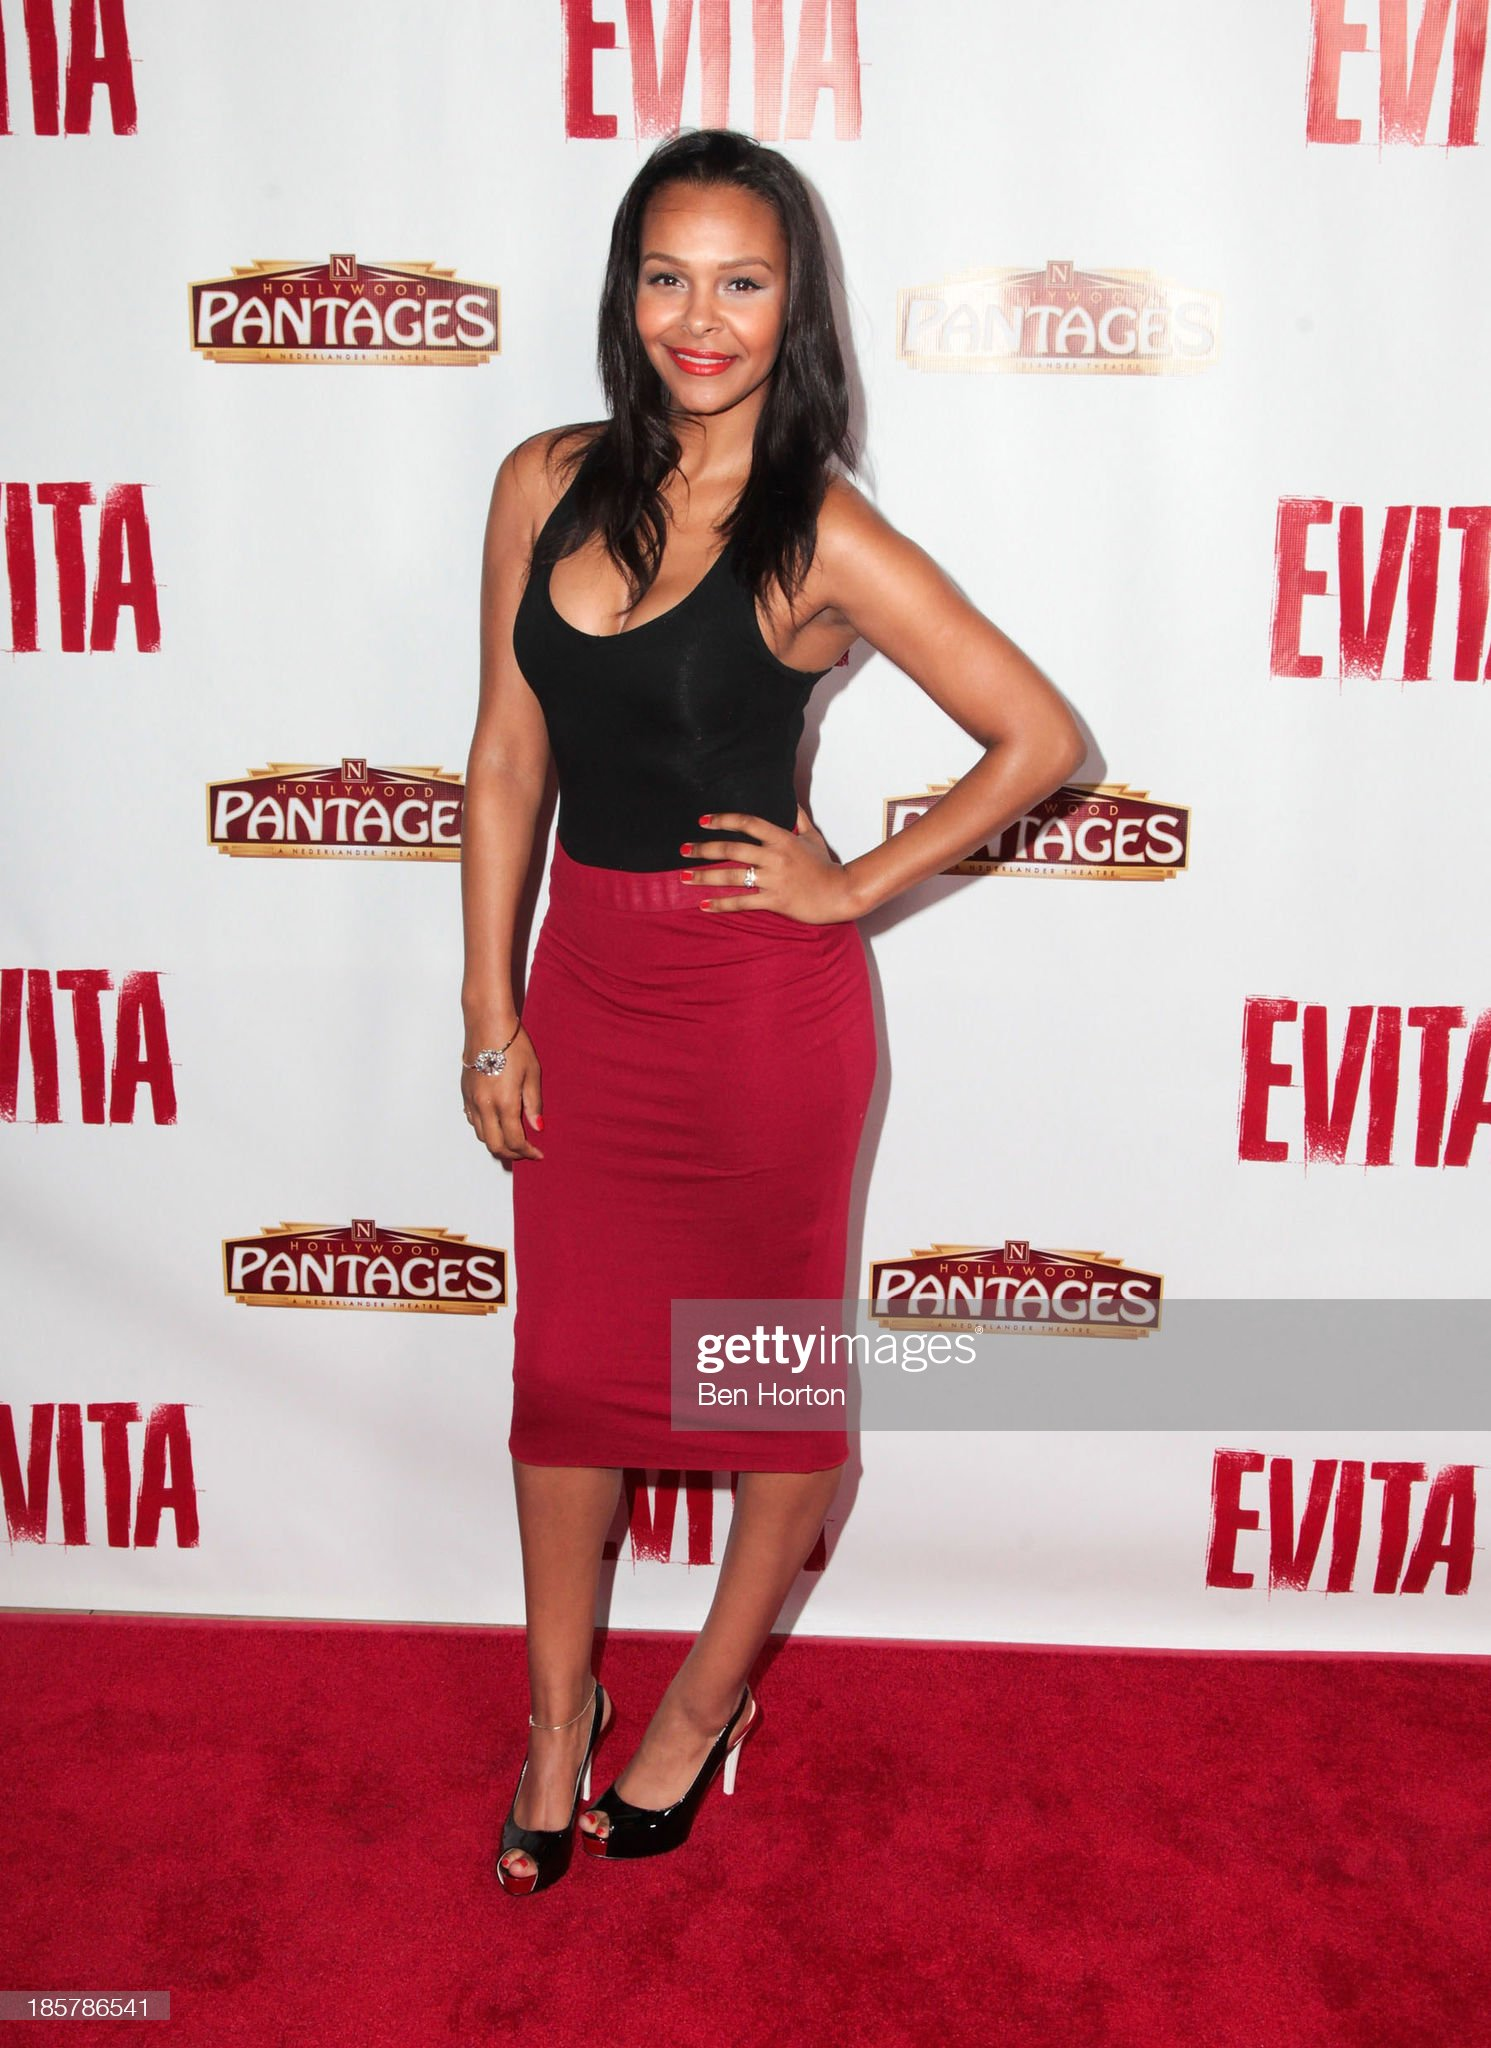 ¿Cuánto mide Samantha Mumba? - Altura - Real height Actress-samantha-mumba-attends-the-evita-los-angeles-opening-night-at-picture-id185786541?s=2048x2048